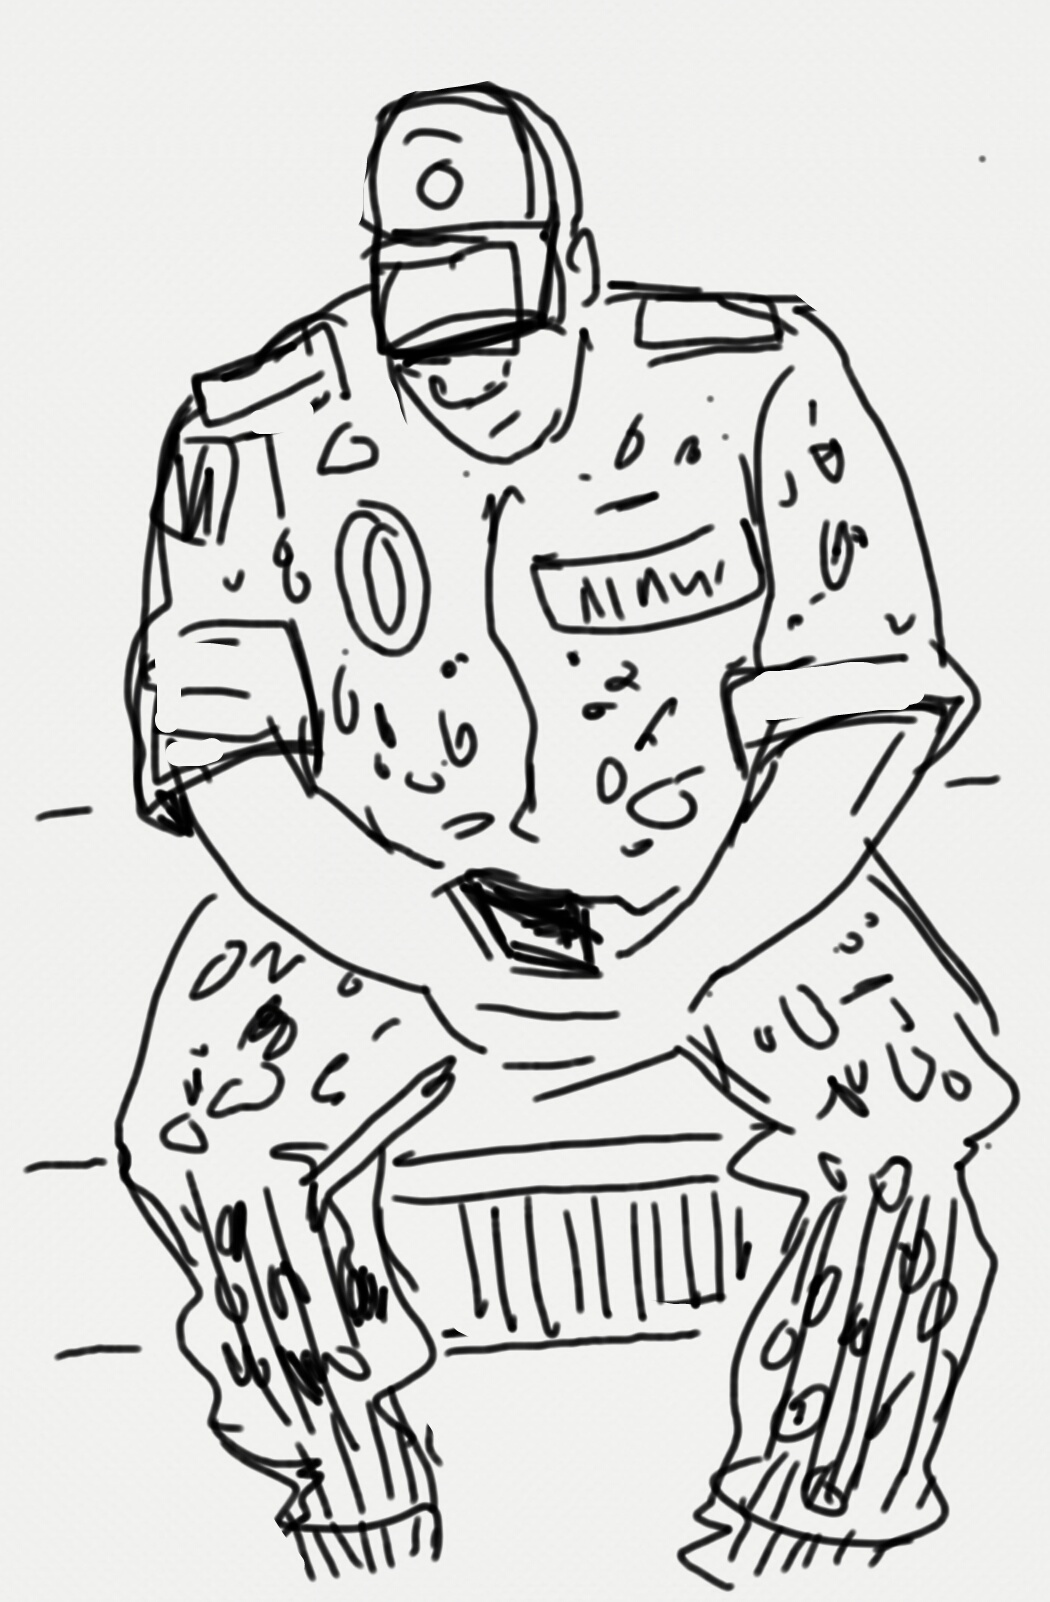 A sketch of a large man hunched over a small phone